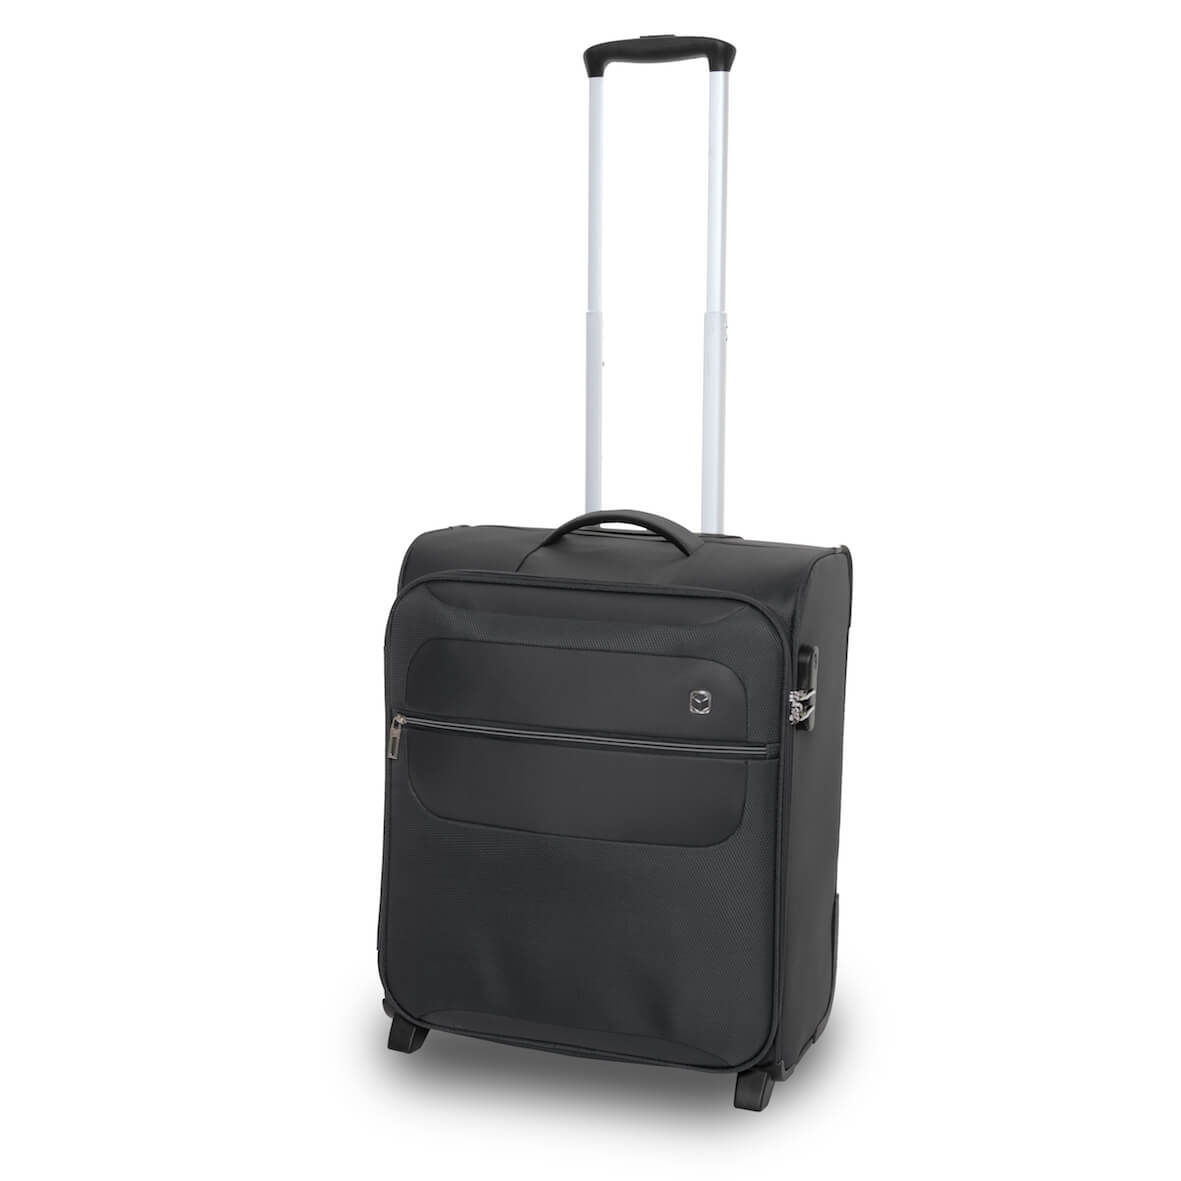 QUBEd Mode 2-Wheel Upright Extra Wide Cabin Case